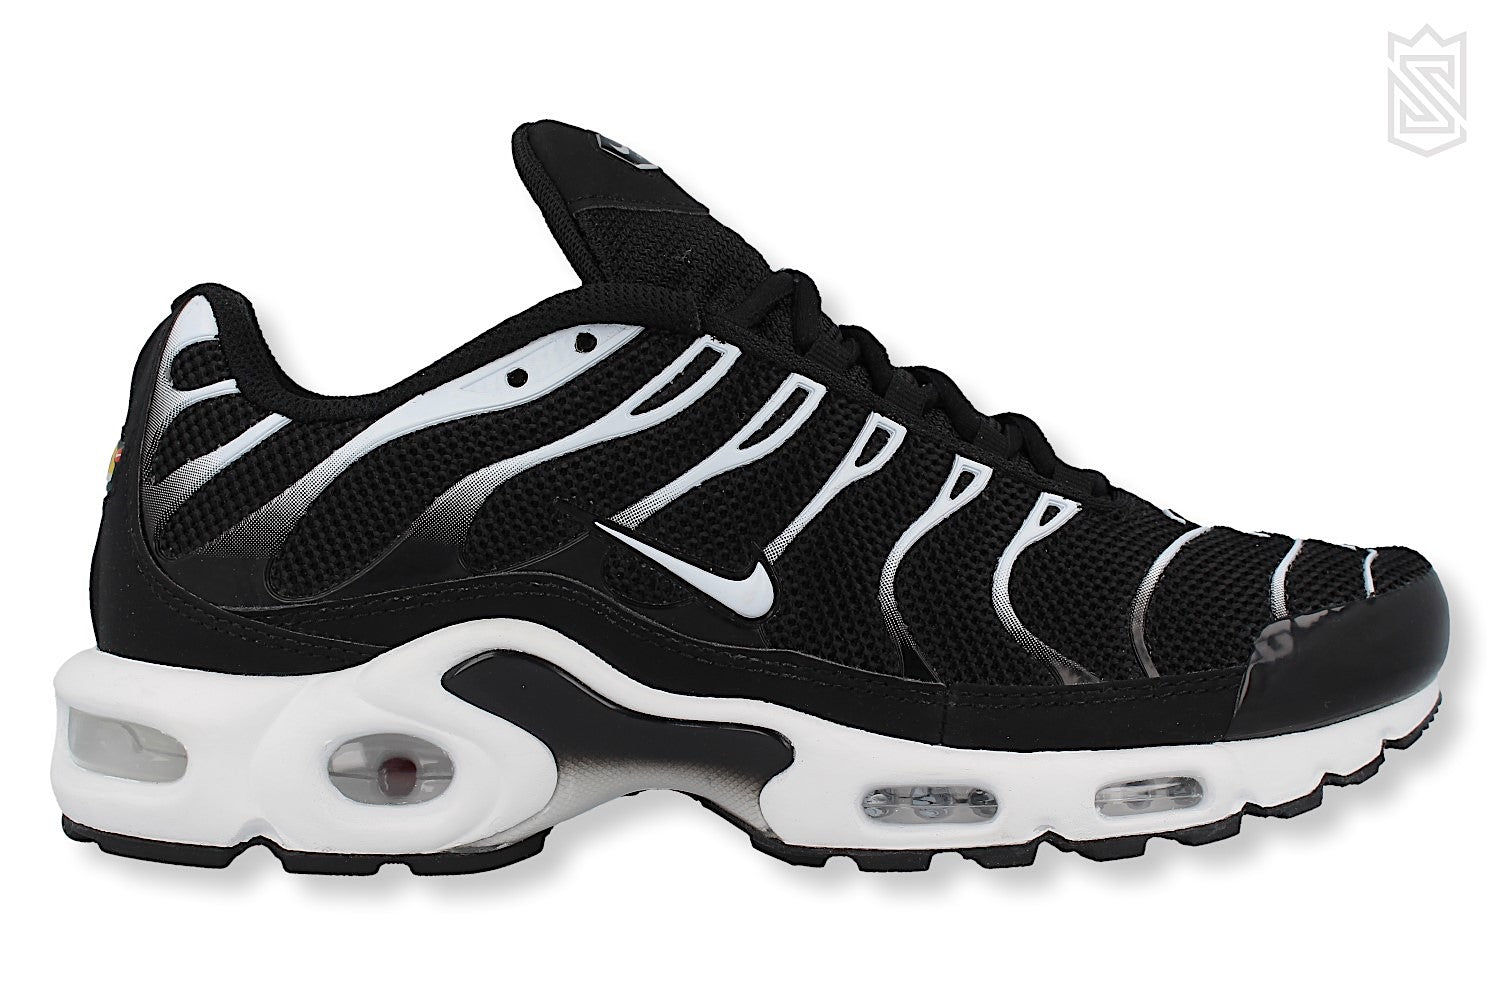 Air Max Plus TN